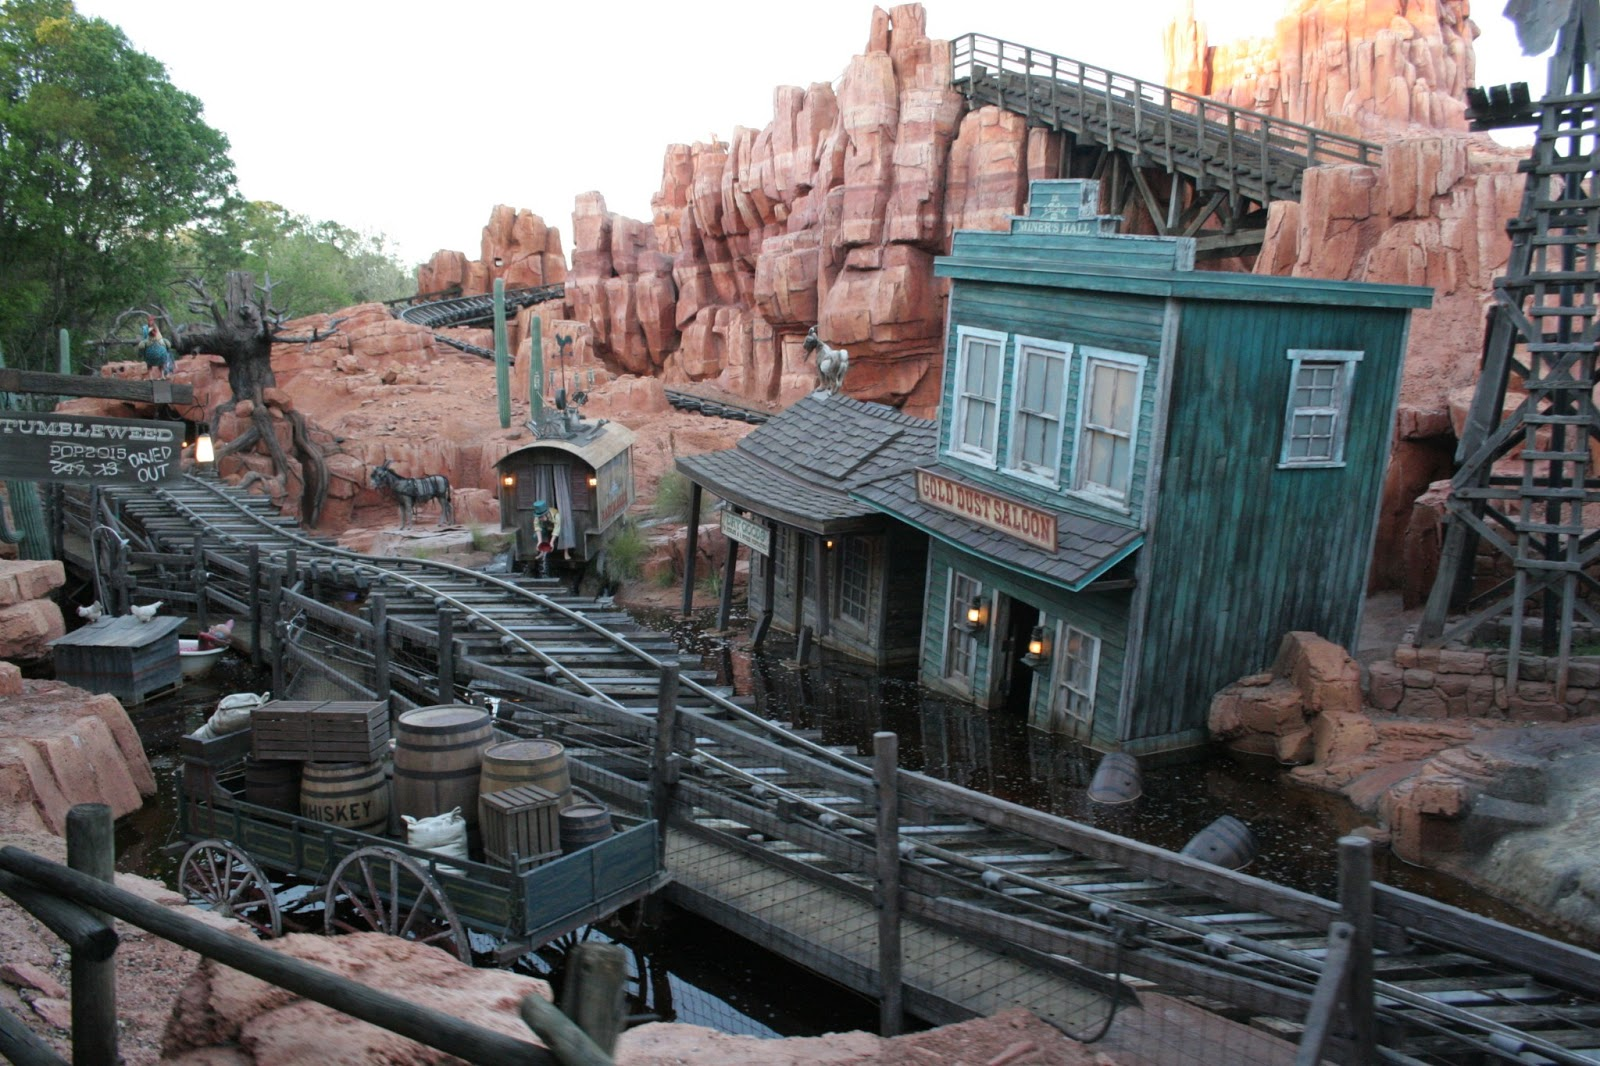 roller coaster, Walt Disney World, Magic Kingdom, ride